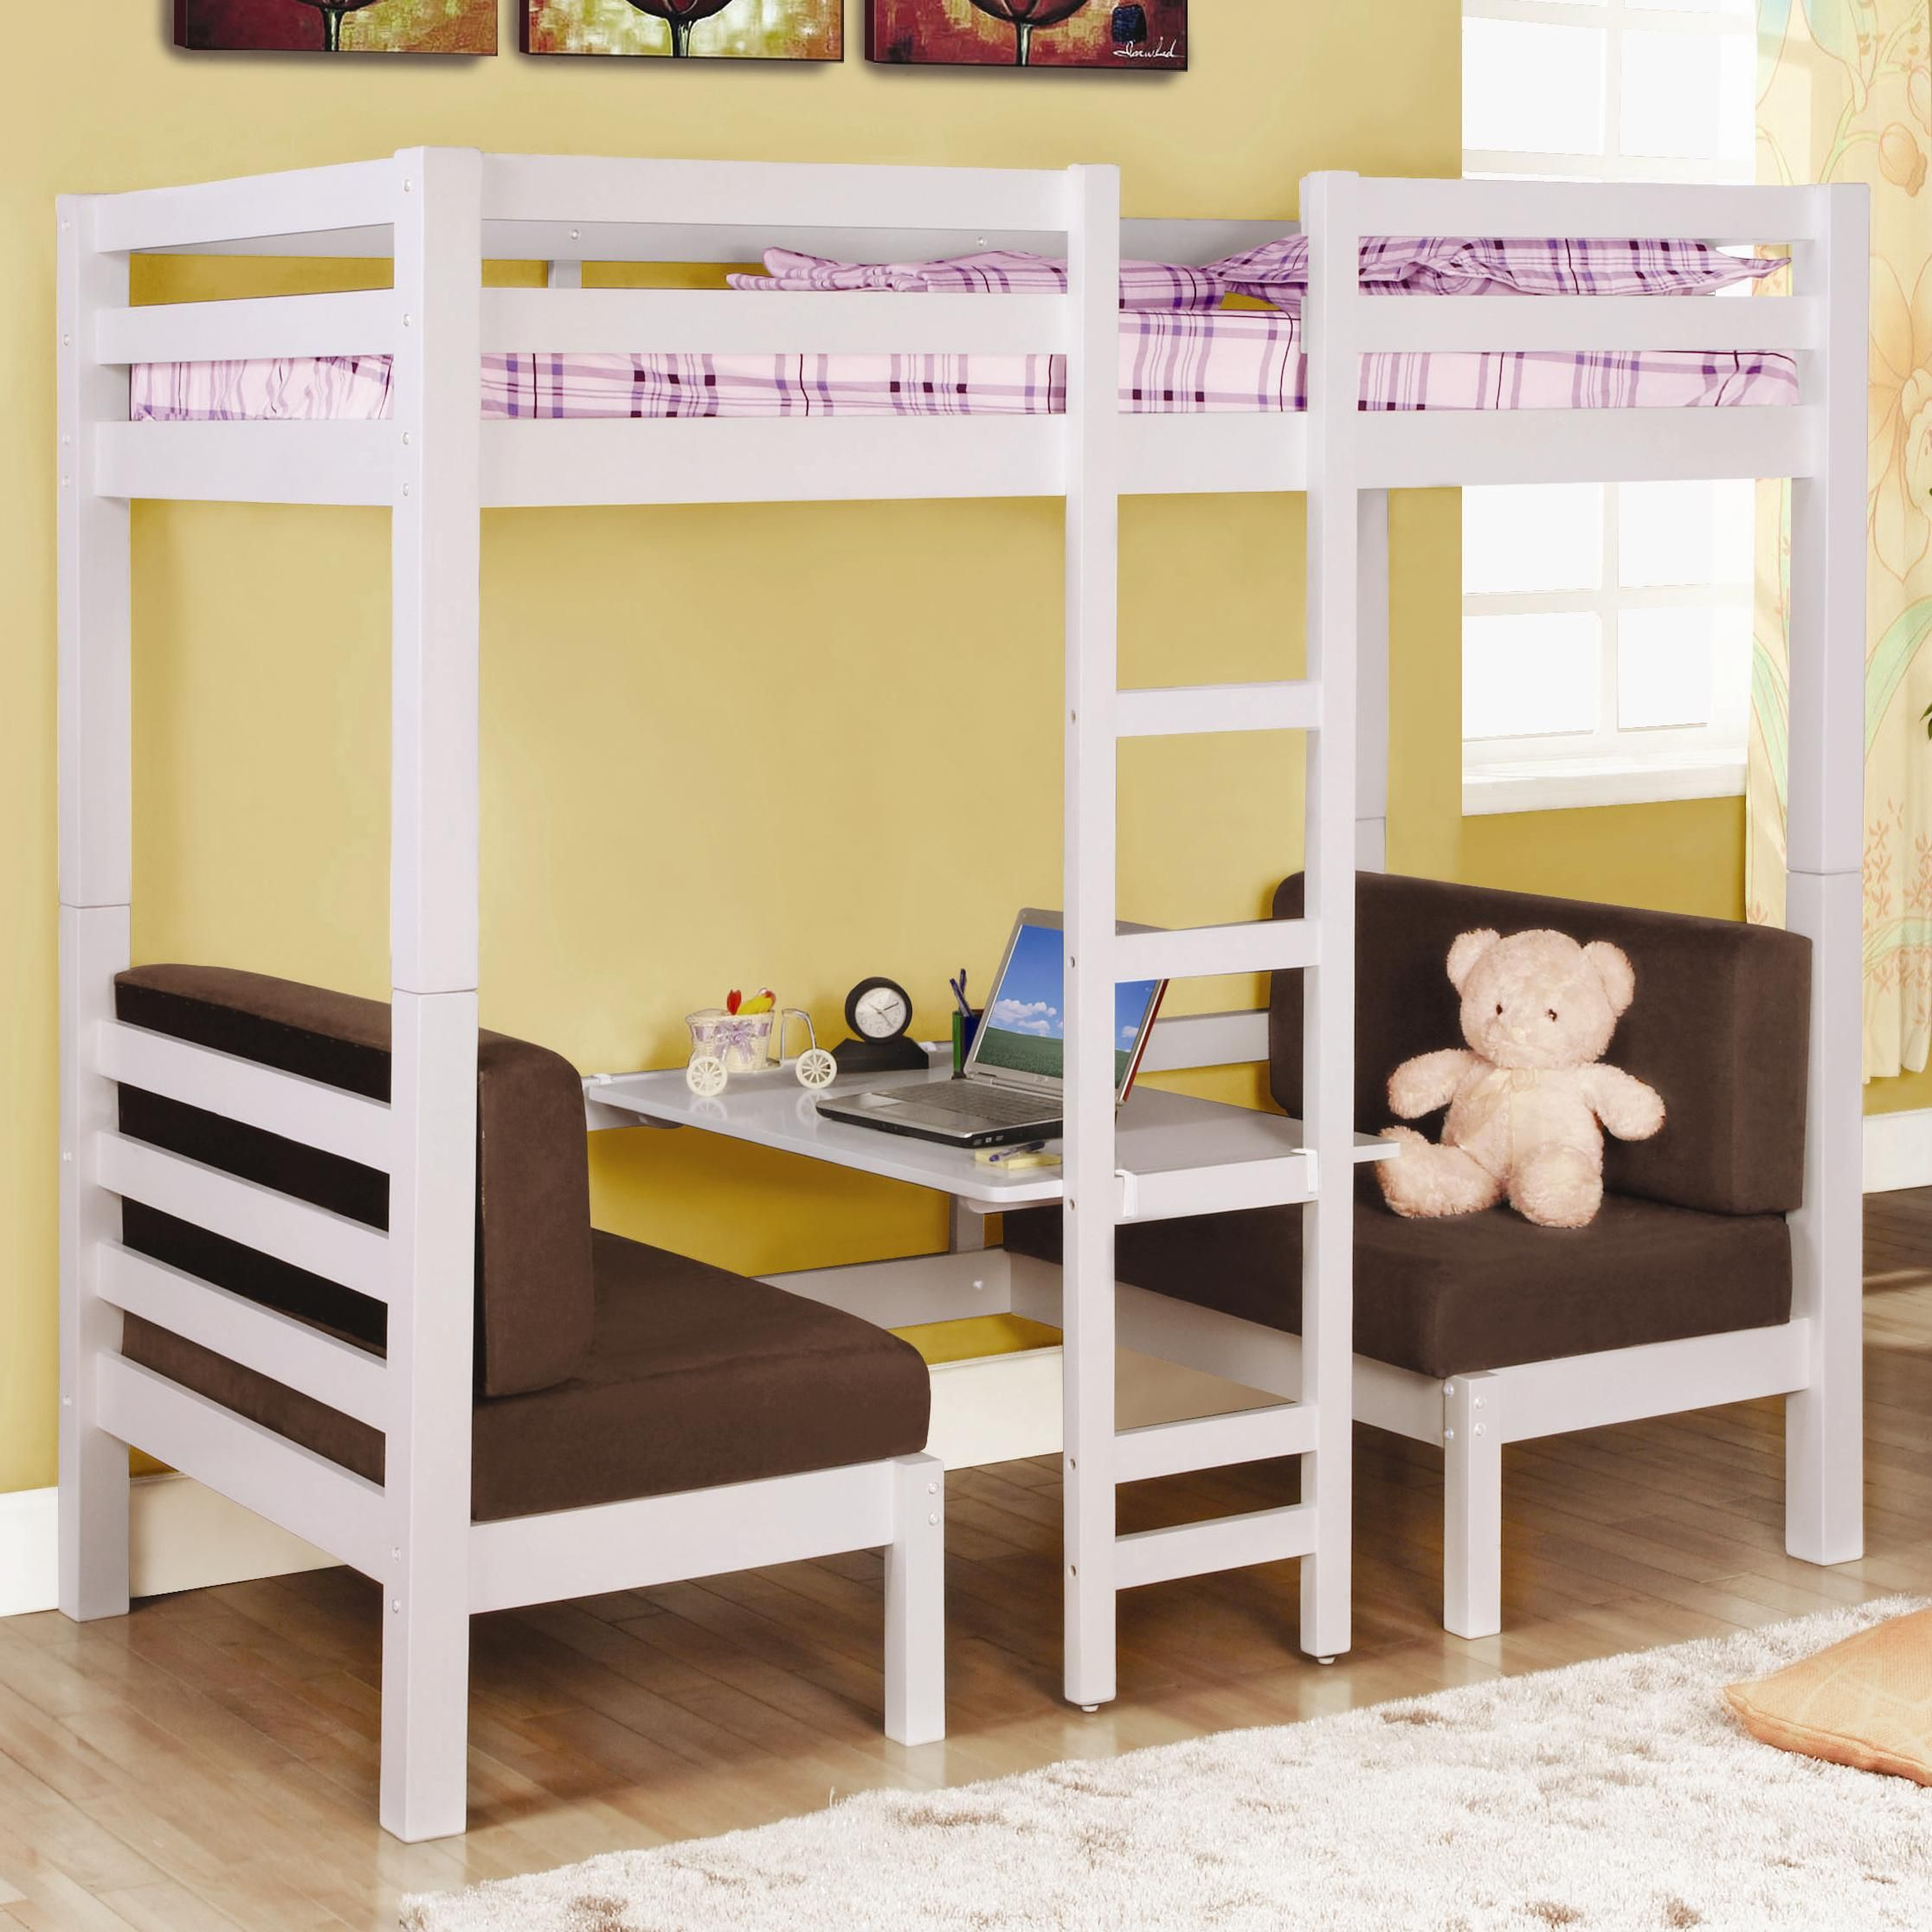 Bunks Twin Over Convertible Loft Bed Create A Fun And Usable E In Your Youth Bedroom With This Unique